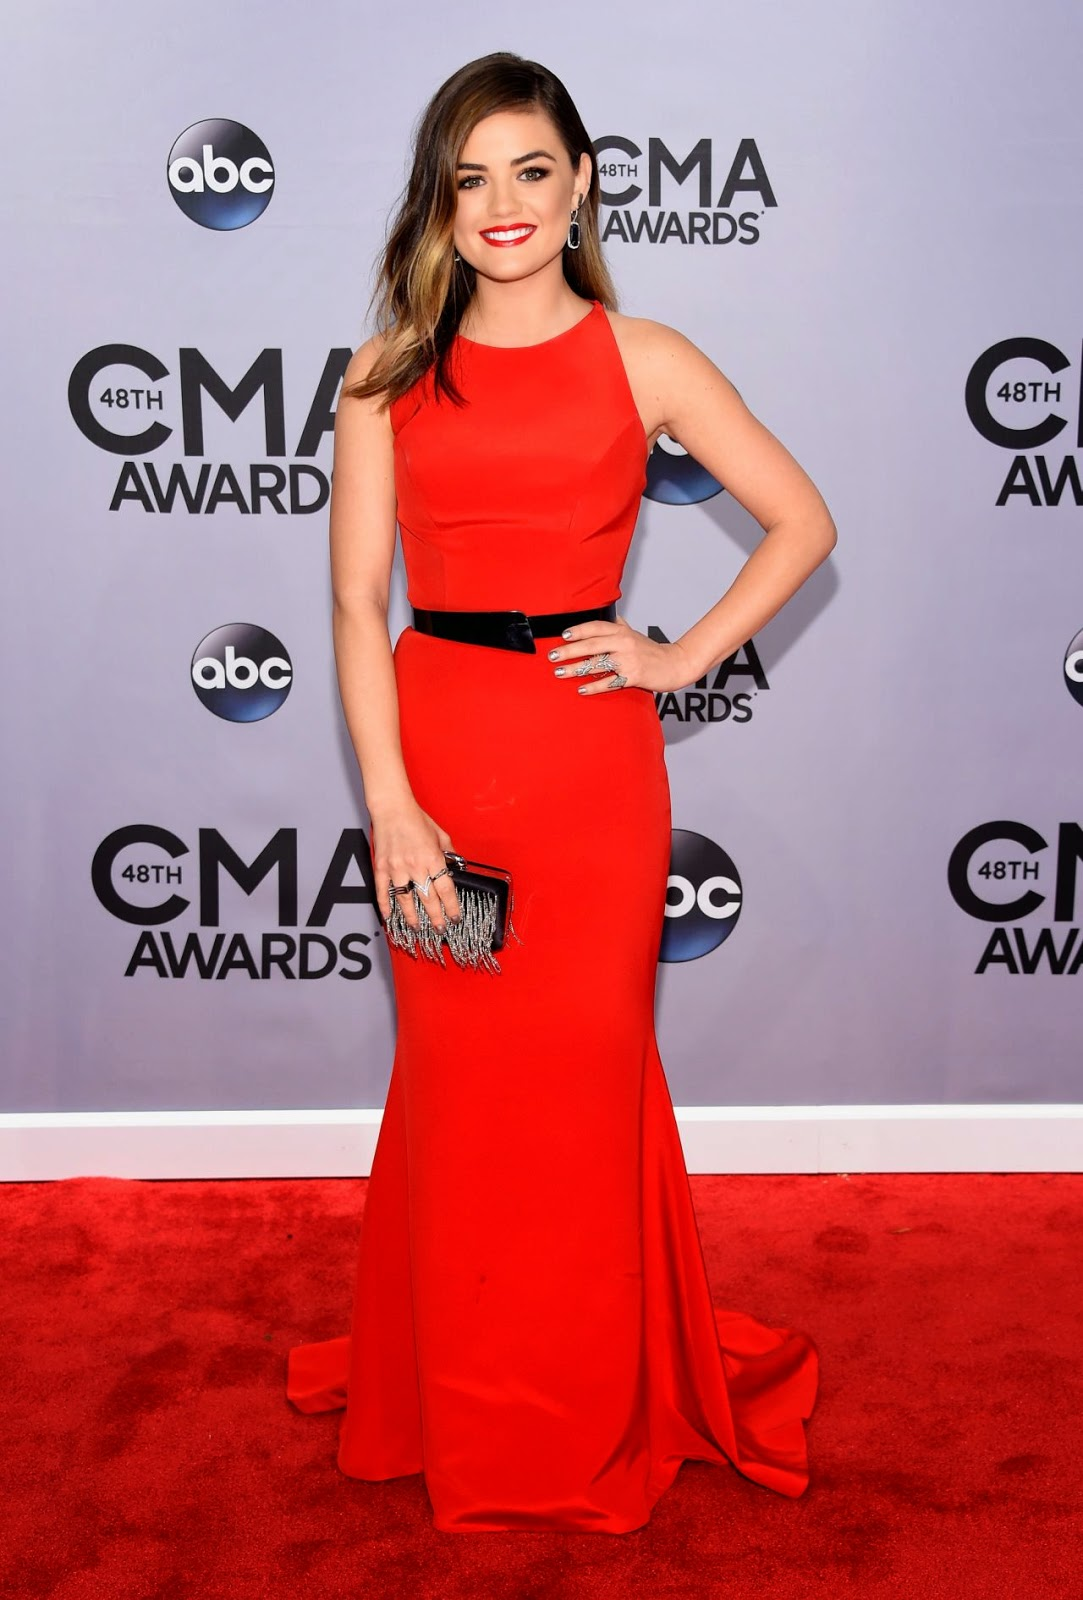 Lucy Hale - Best Dressed Celebrities at the 2014 Annual CMA Awards in Nashville